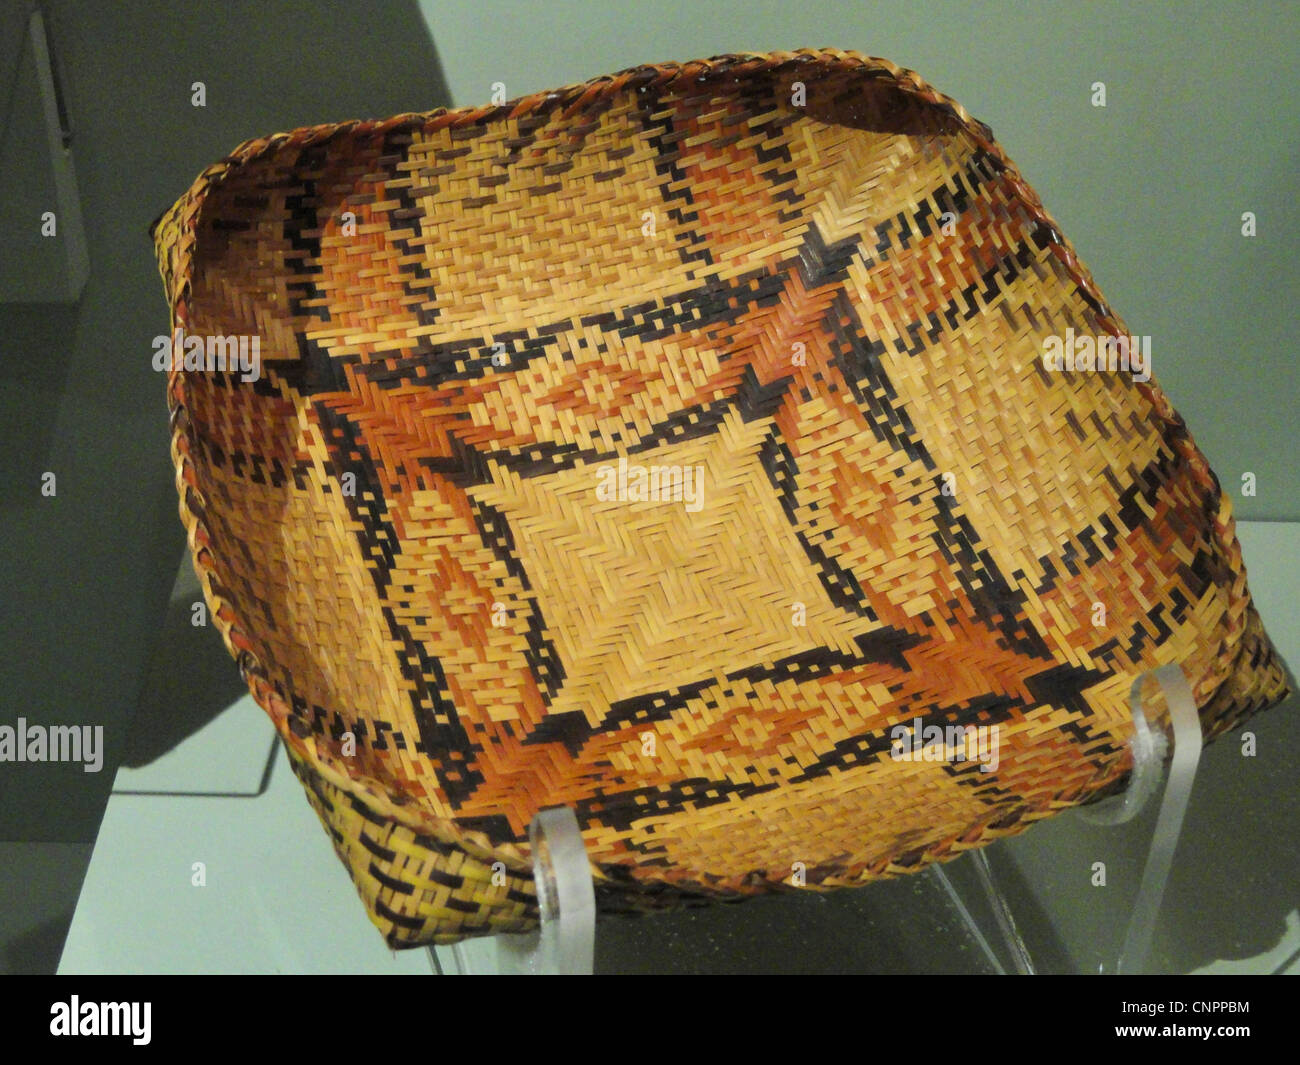 Basket tray, Chitimacha, accessioned in 1902 - Native American collection - Peabody Museum, Harvard University - Stock Image